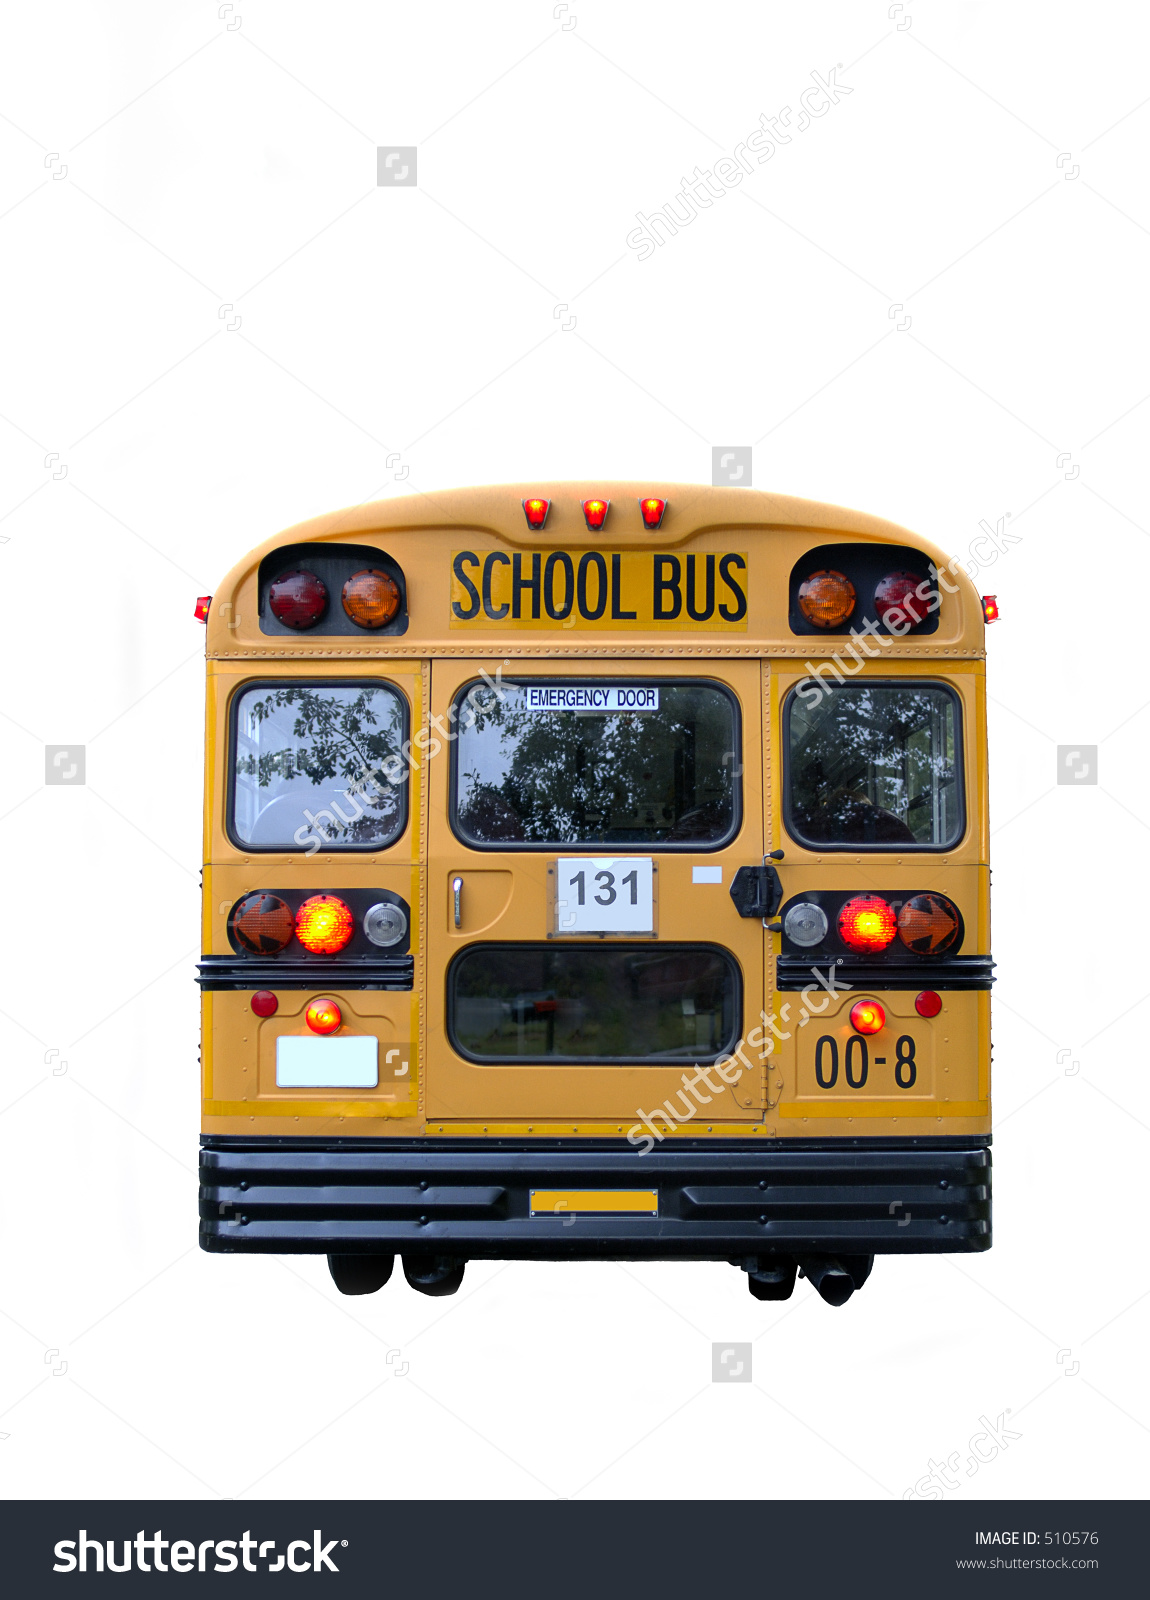 School bus flashing yellow light clipart graphic freeuse library Real School Bus Rear Kids Inside Stock Photo 510576 - Shutterstock graphic freeuse library